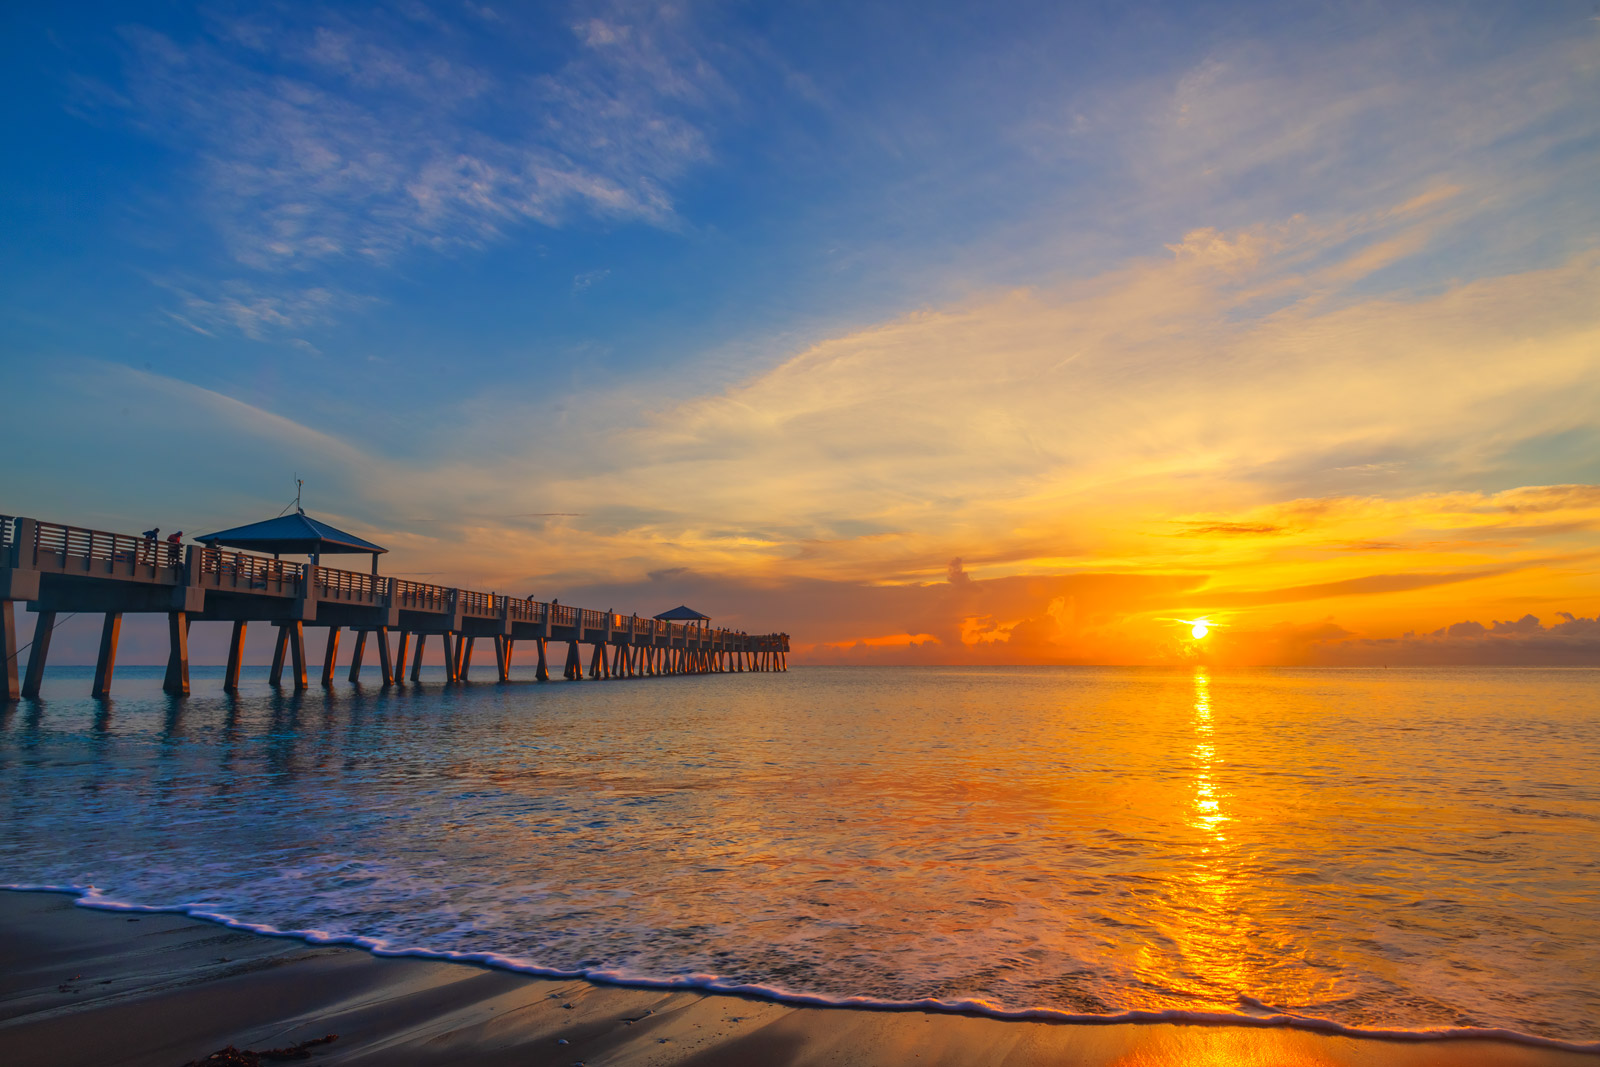 A Limited Edition, Fine Art photograph of a beautiful sunrise over the Juno Beach pier in Juno Beach, Florida. Available as a...